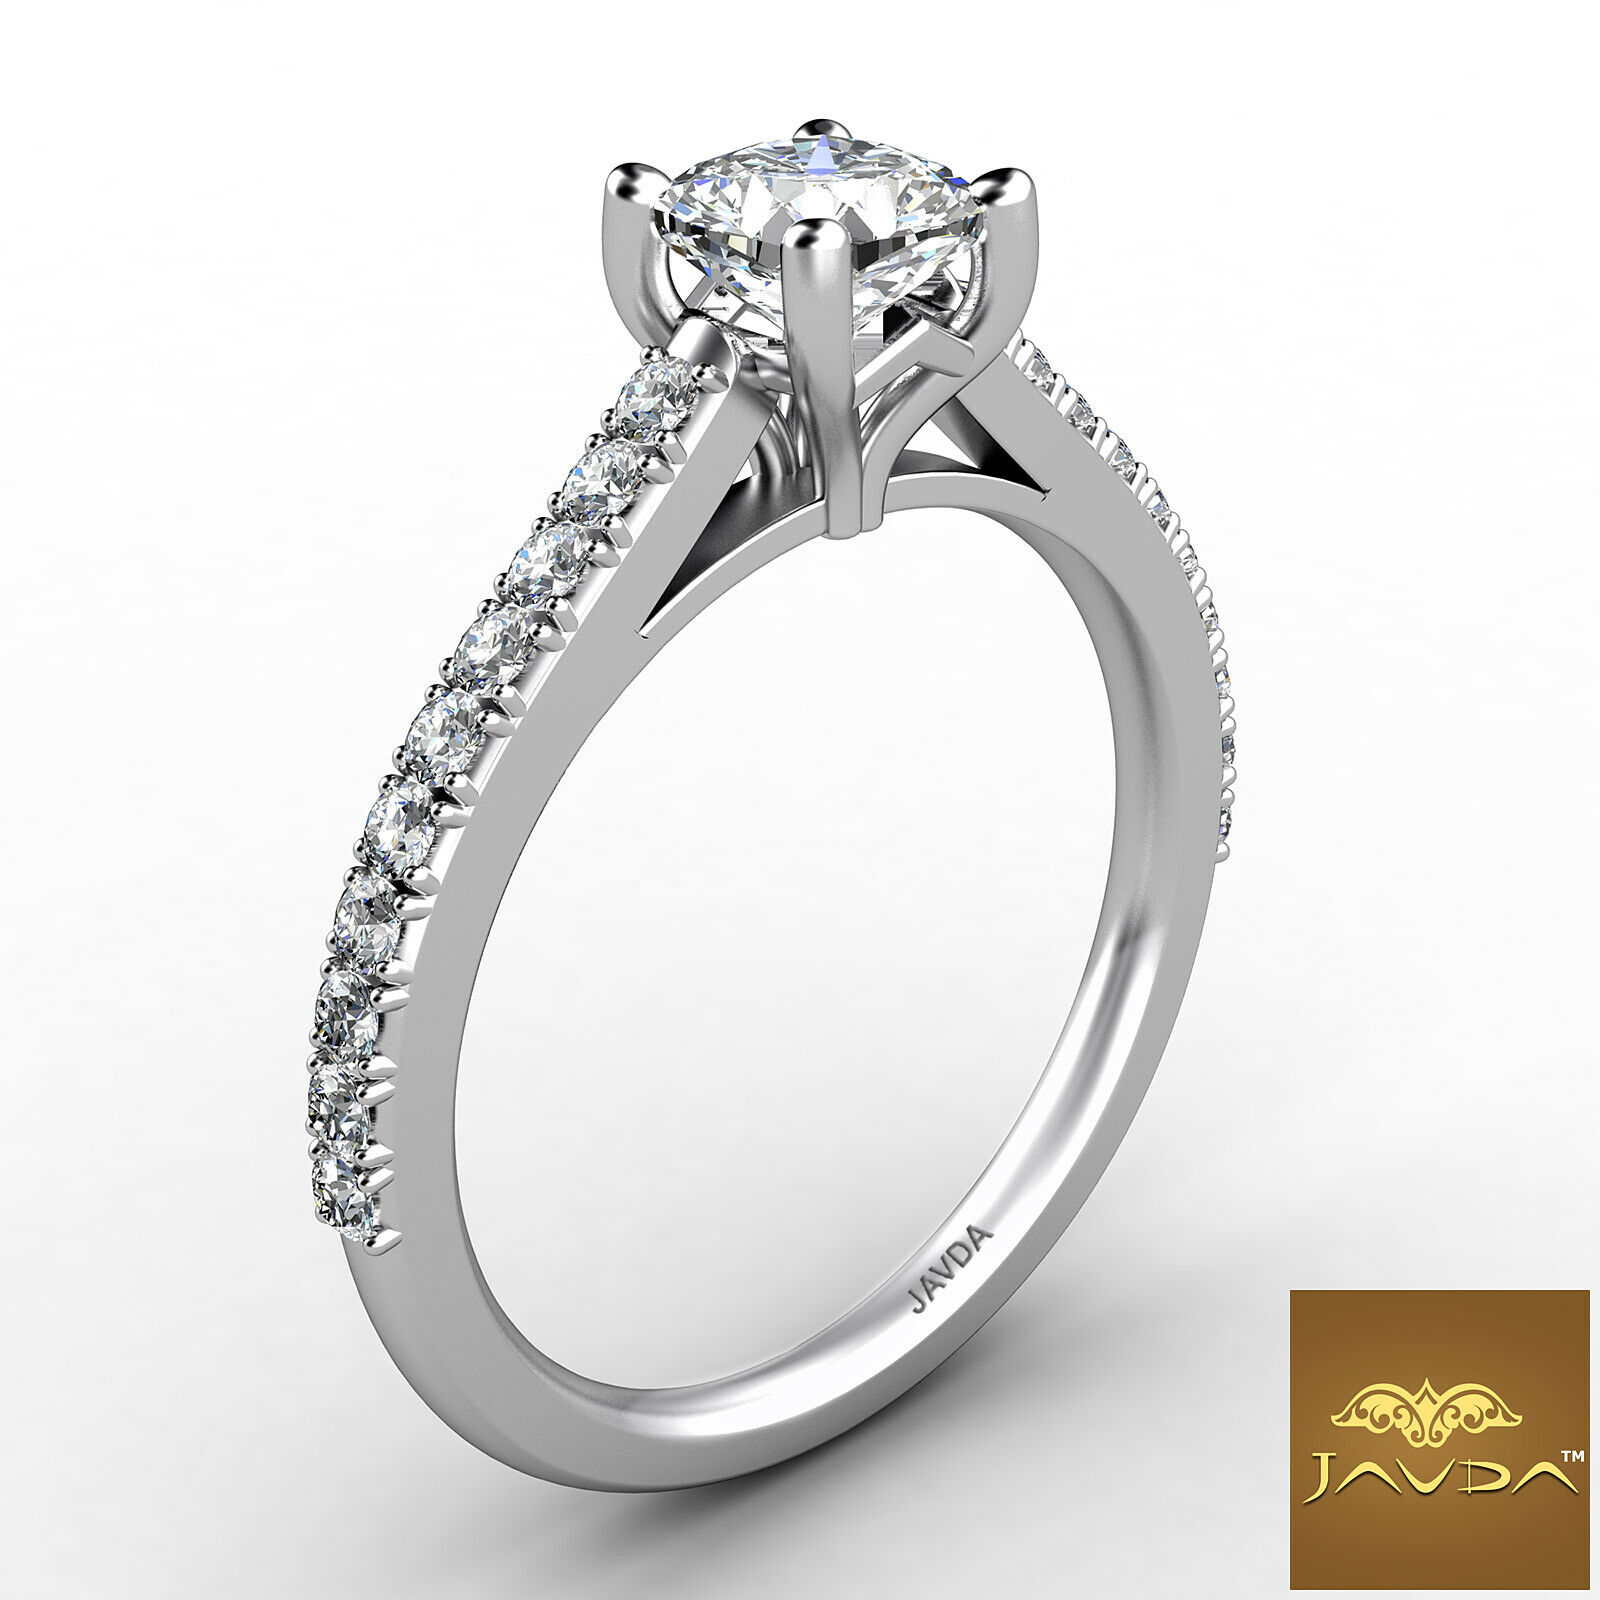 1.01ct Double Prong Setting Cushion Diamond Engagement Ring GIA F-SI1 White Gold 2